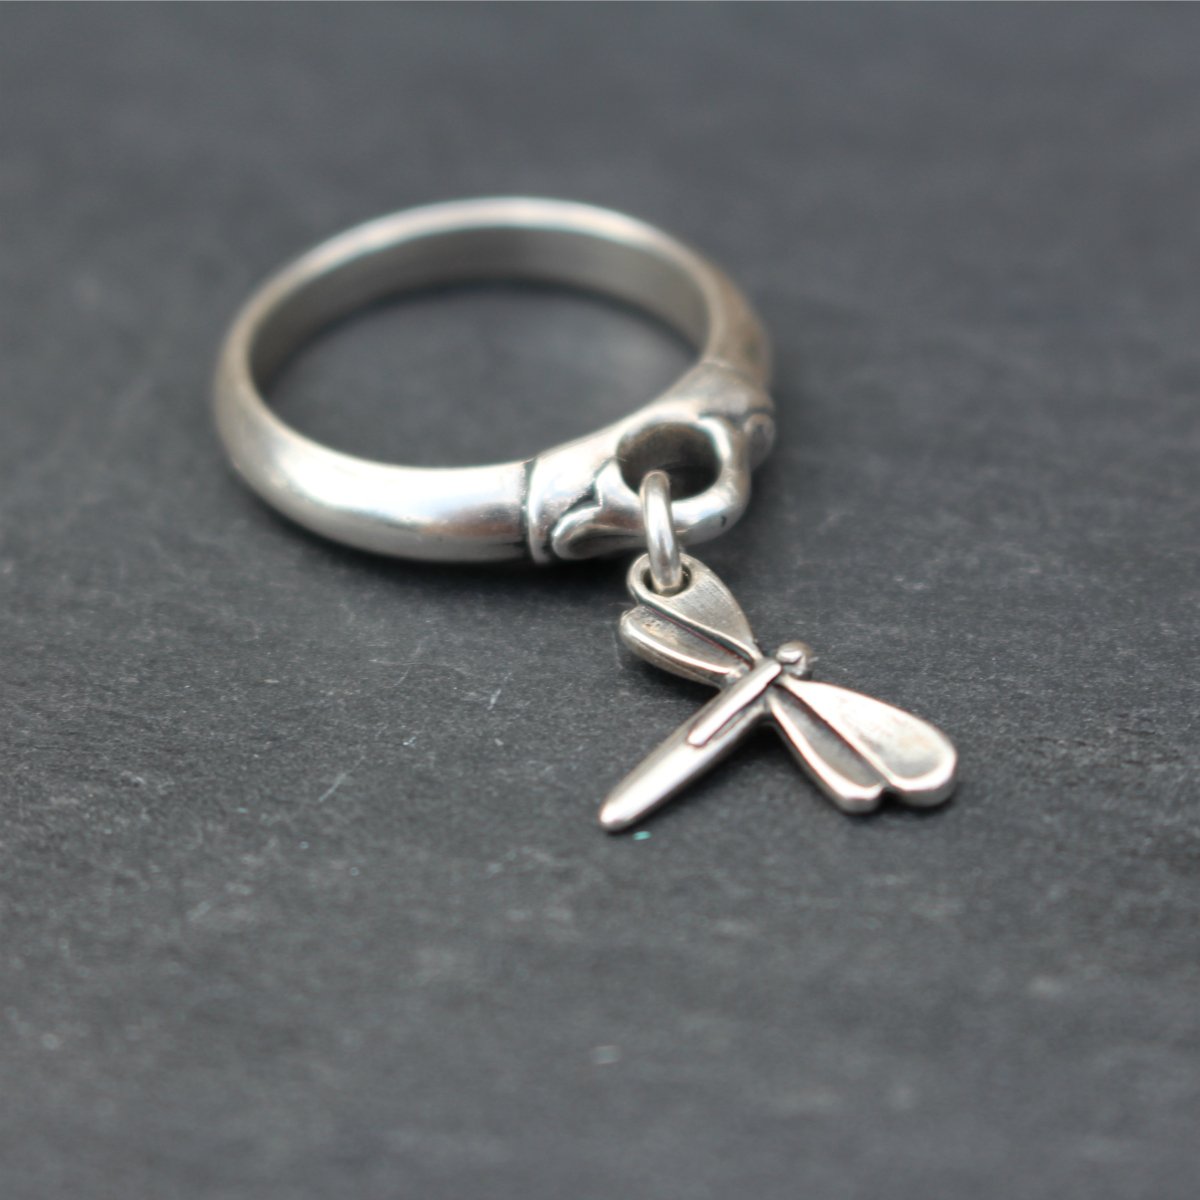 Danon Jewellery Dragonfly Charm Ring